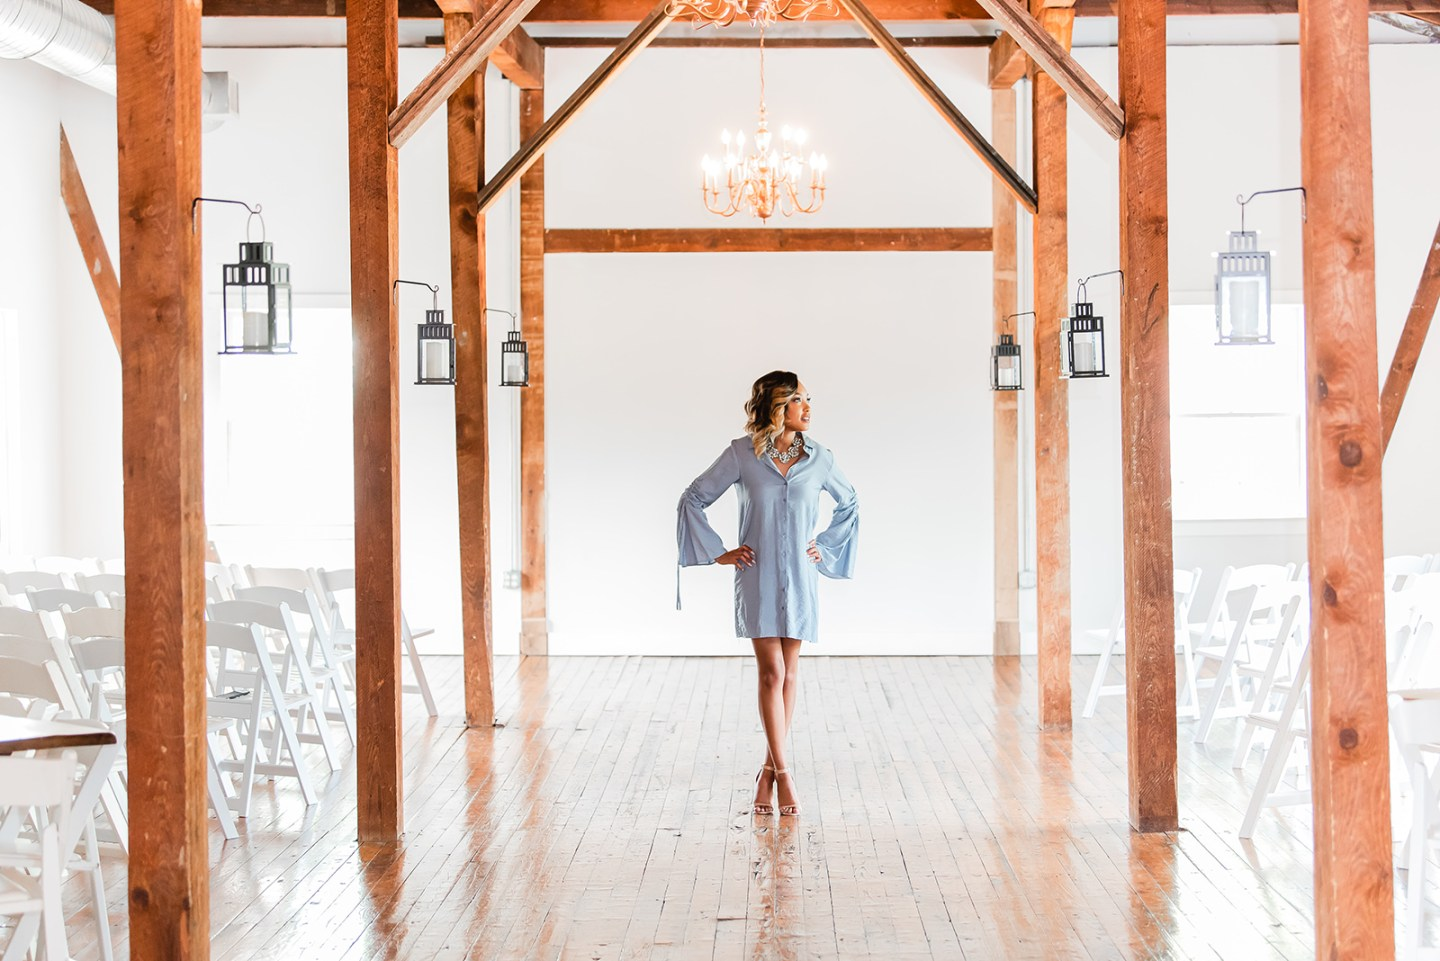 Black Owned Wedding Venue Tour with Tips on Picking a Venue